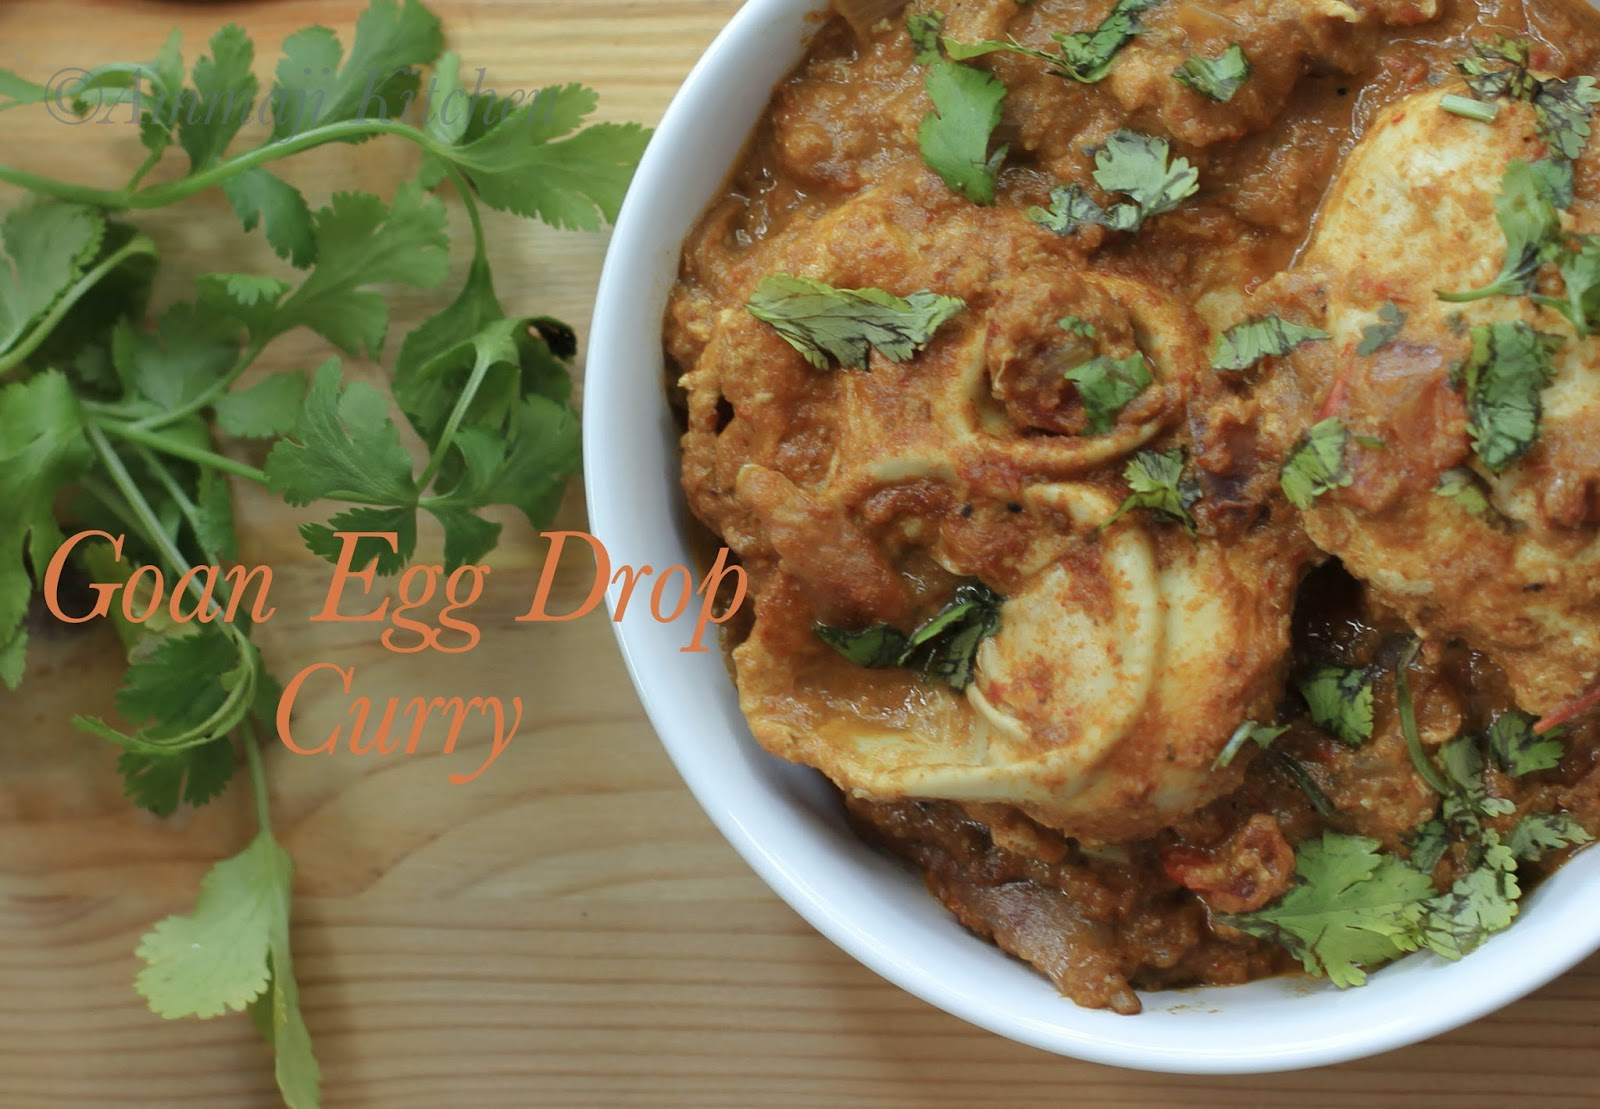 Goan egg drop curry indian food recipes ammaji kitchen goan egg drop curry forumfinder Image collections